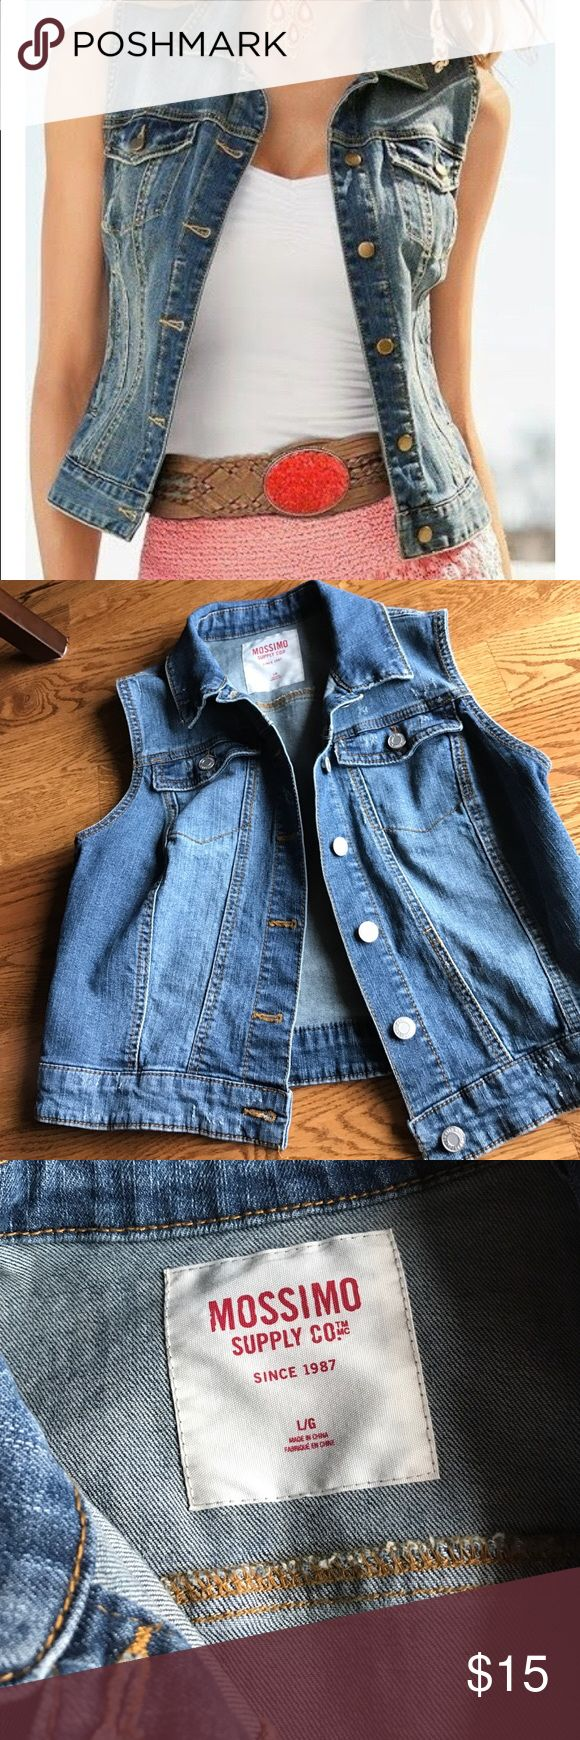 Mossimo Supply Co Ladies Sleeveless Jean Jacket Mossimo Supply Co Ladies Sleeveless Jeans Jacket. Excellent condition- worn once. Size L. Mossimo Supply Co. Jackets & Coats Jean Jackets